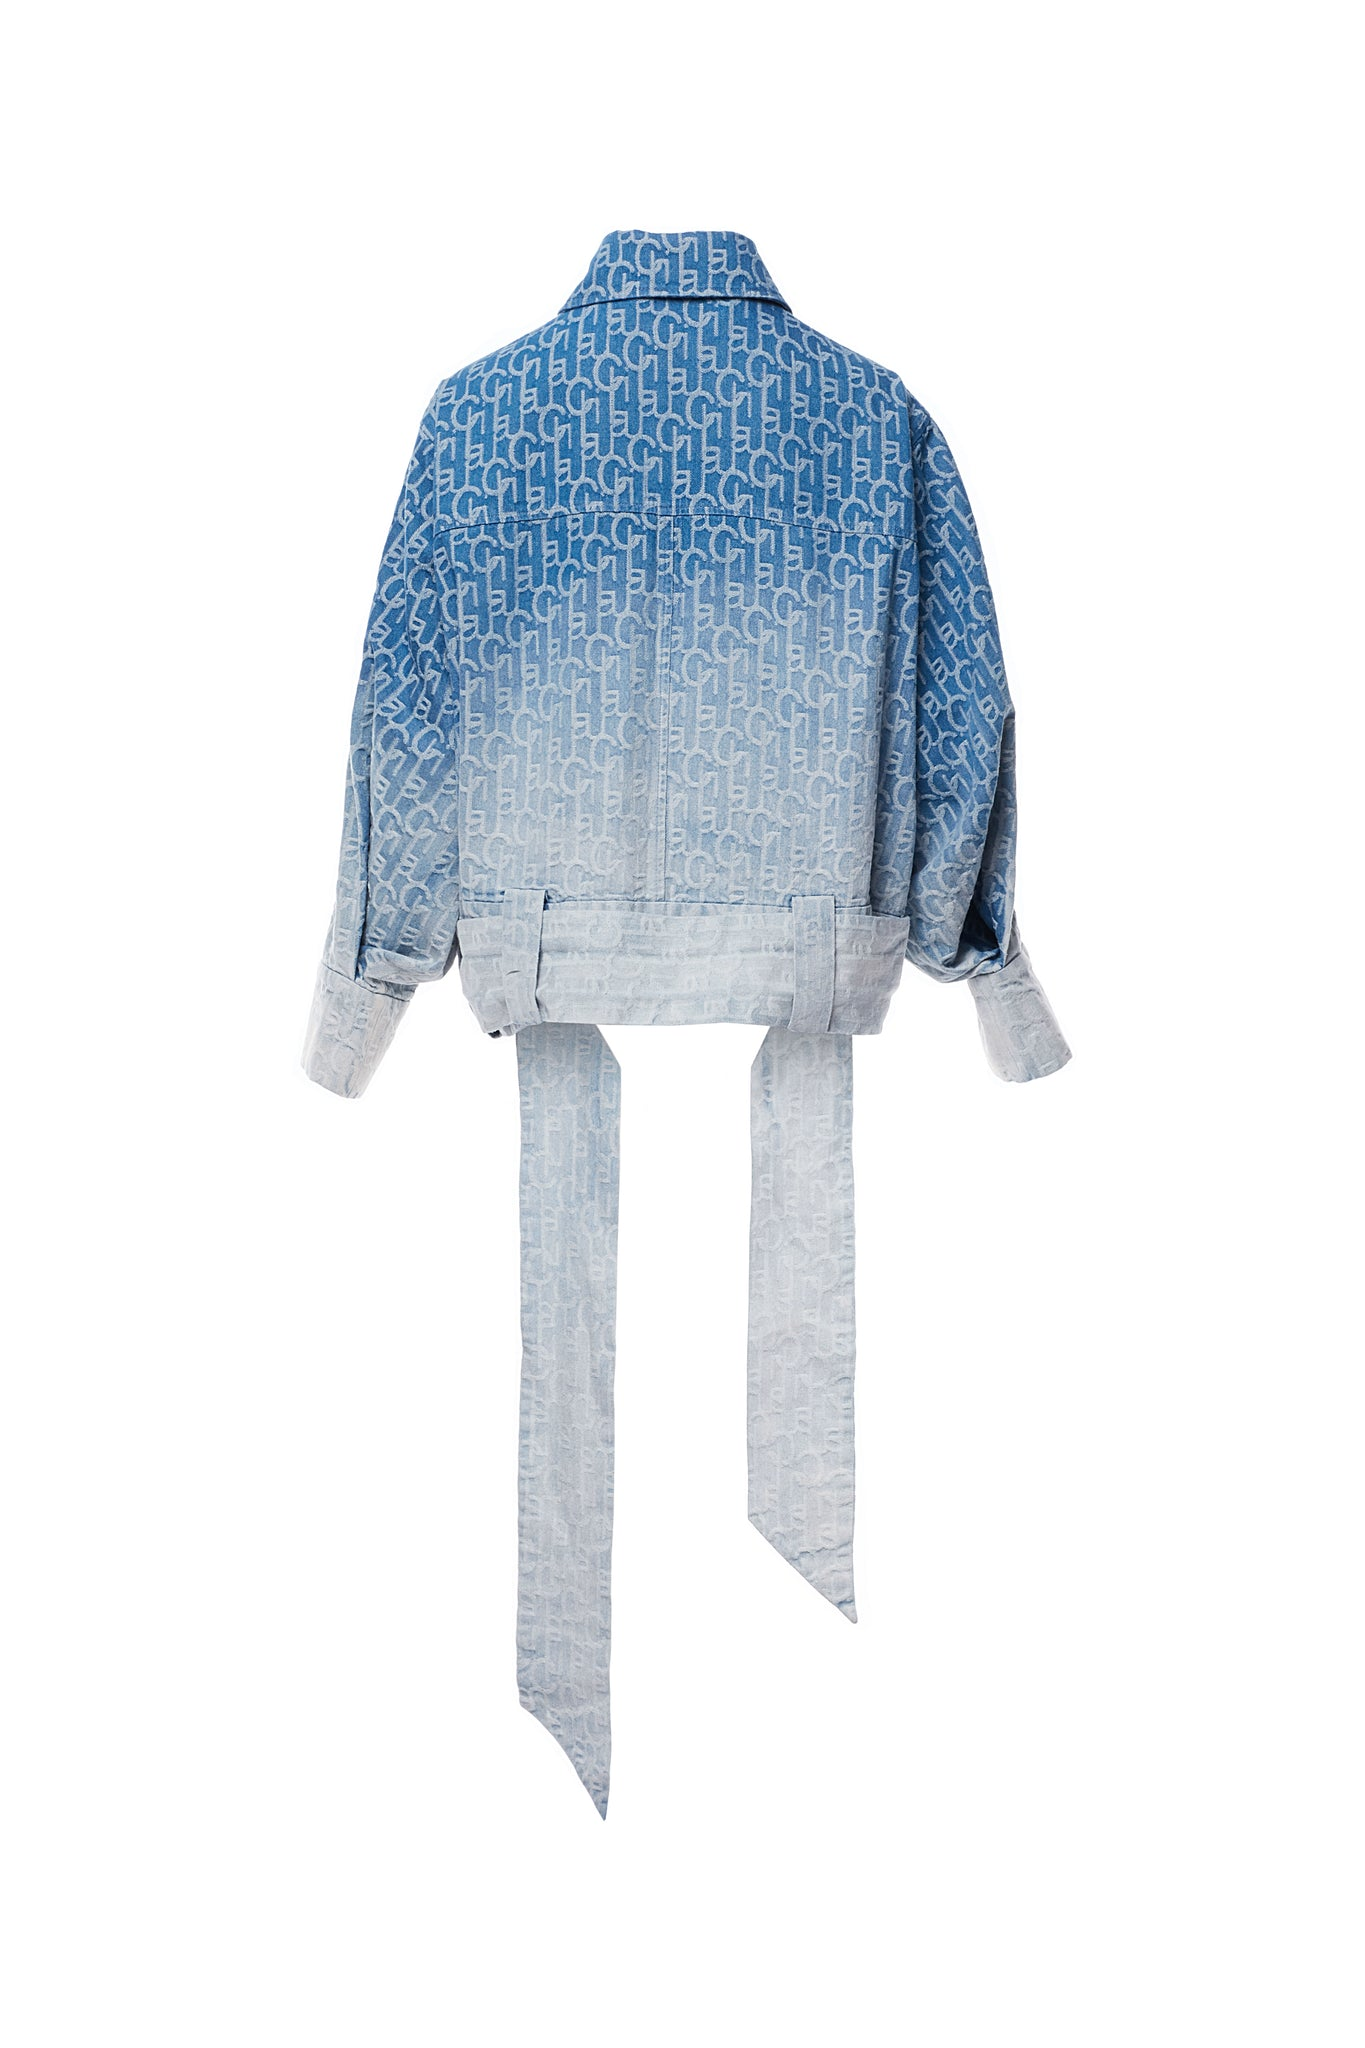 Laulau Chichi Ombre Denim Jacquard Oversized Jacket with Beading in Back, Light Blue